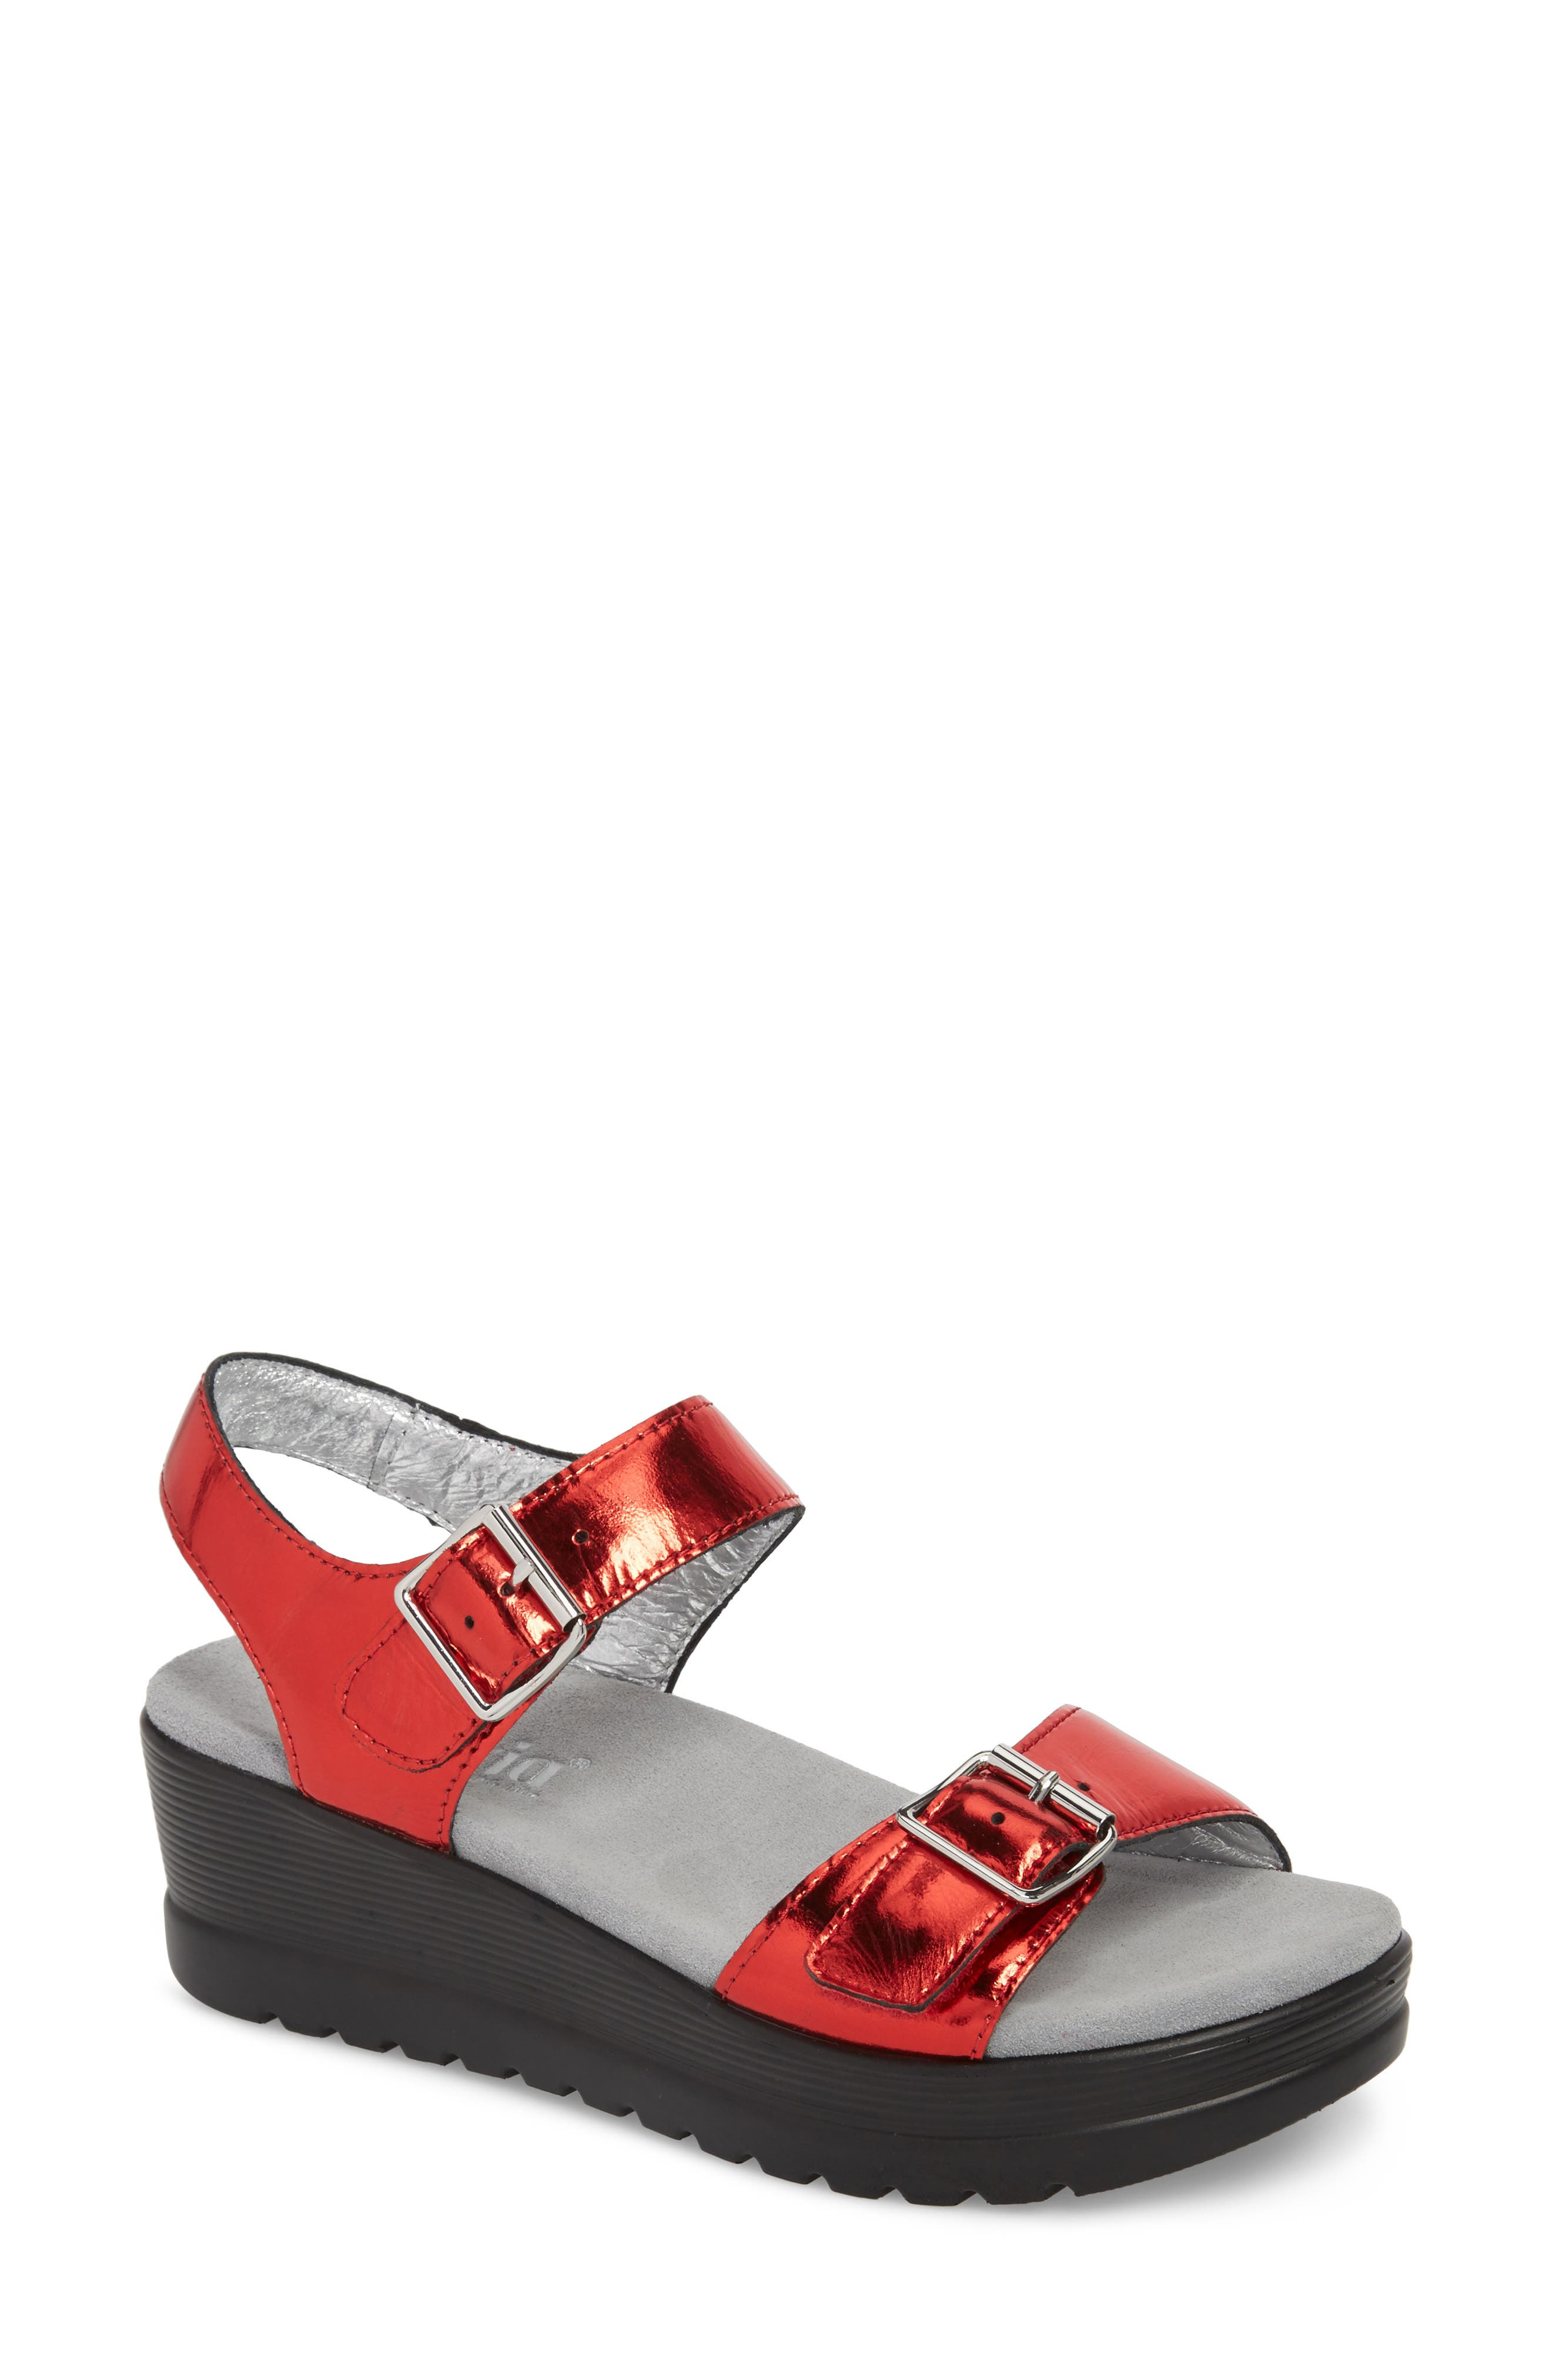 ALEGRIA by PG Lite Morgyn Sandal, Main, color, CHERRY MIRROR LEATHER